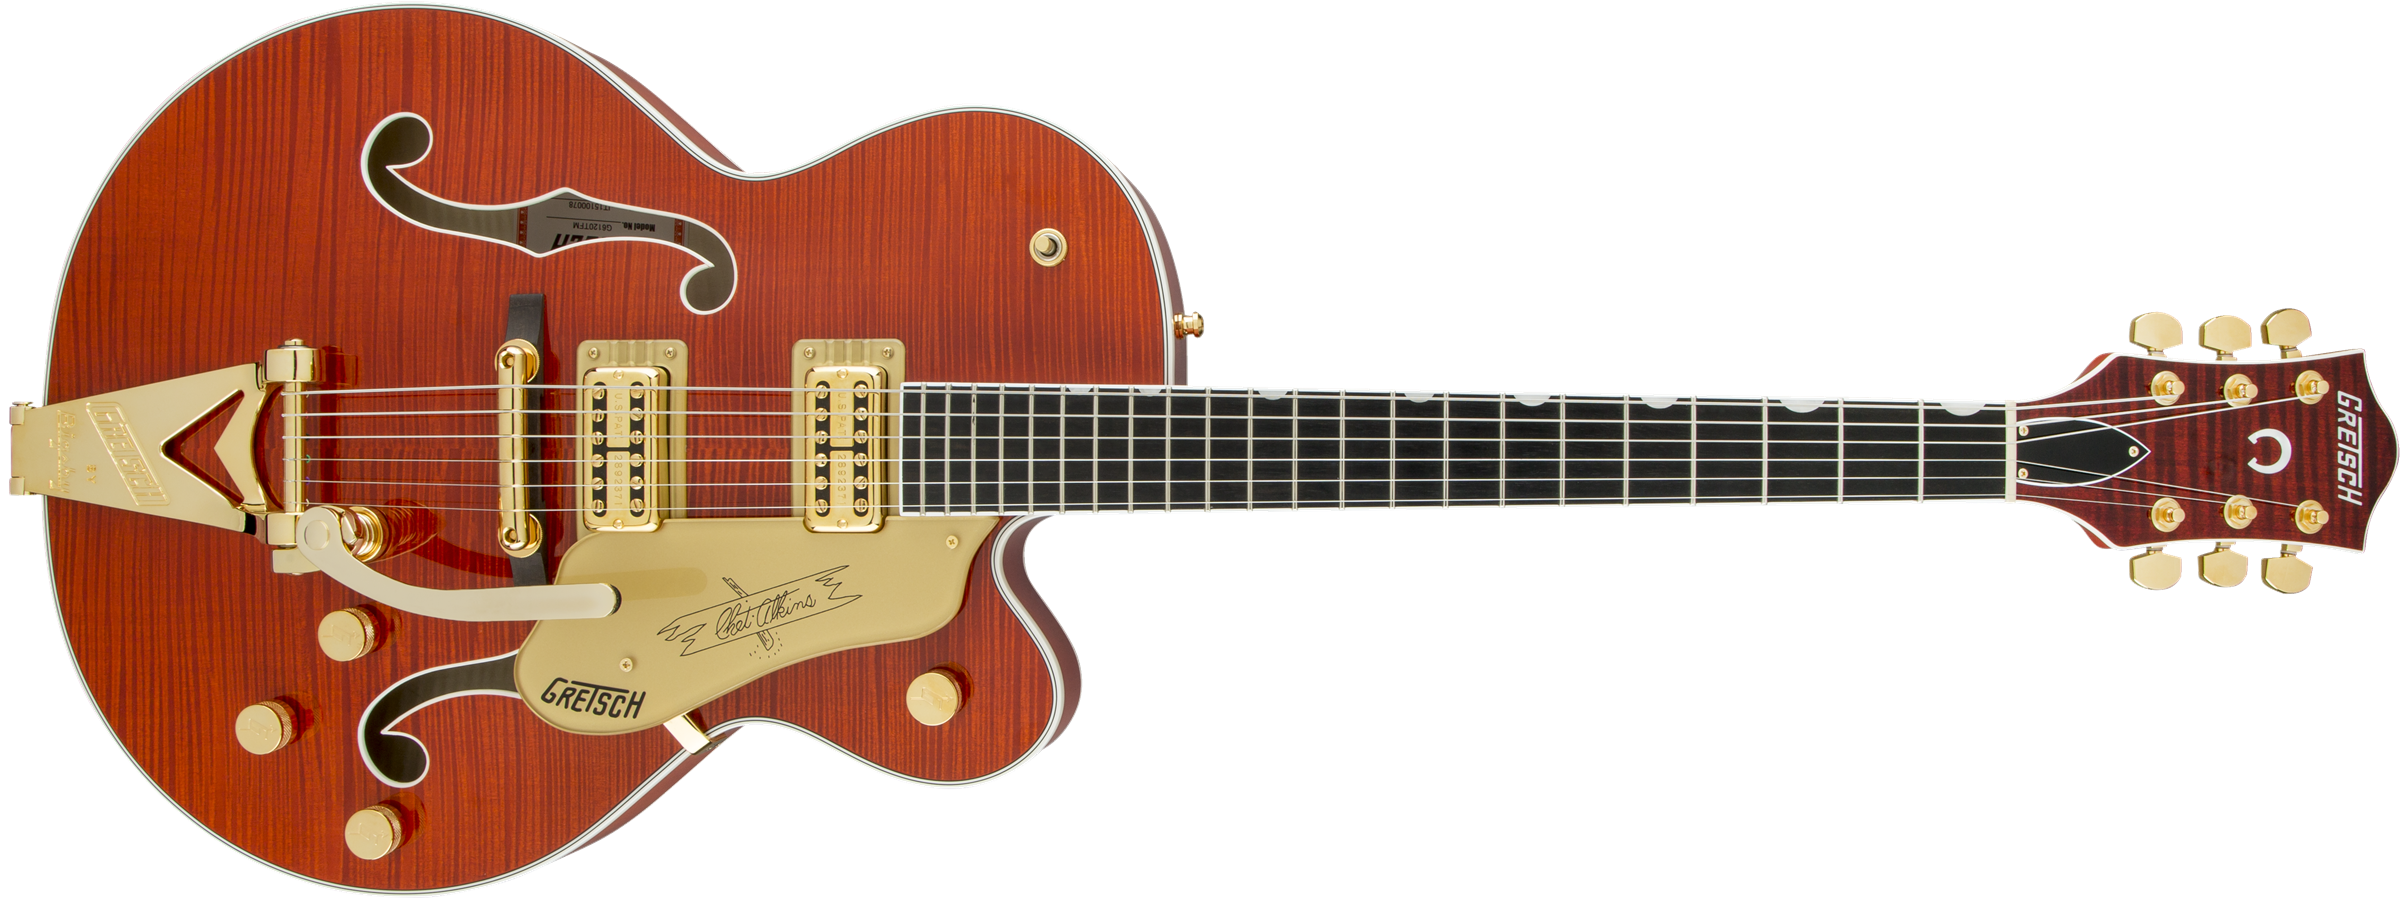 GRETSCH-G6120TFM-Players-Edition-Nashville-with-String-Thru-Bigsby-FilterTron-Pickups-Flame-Maple-Orange-Stain-sku-571001474